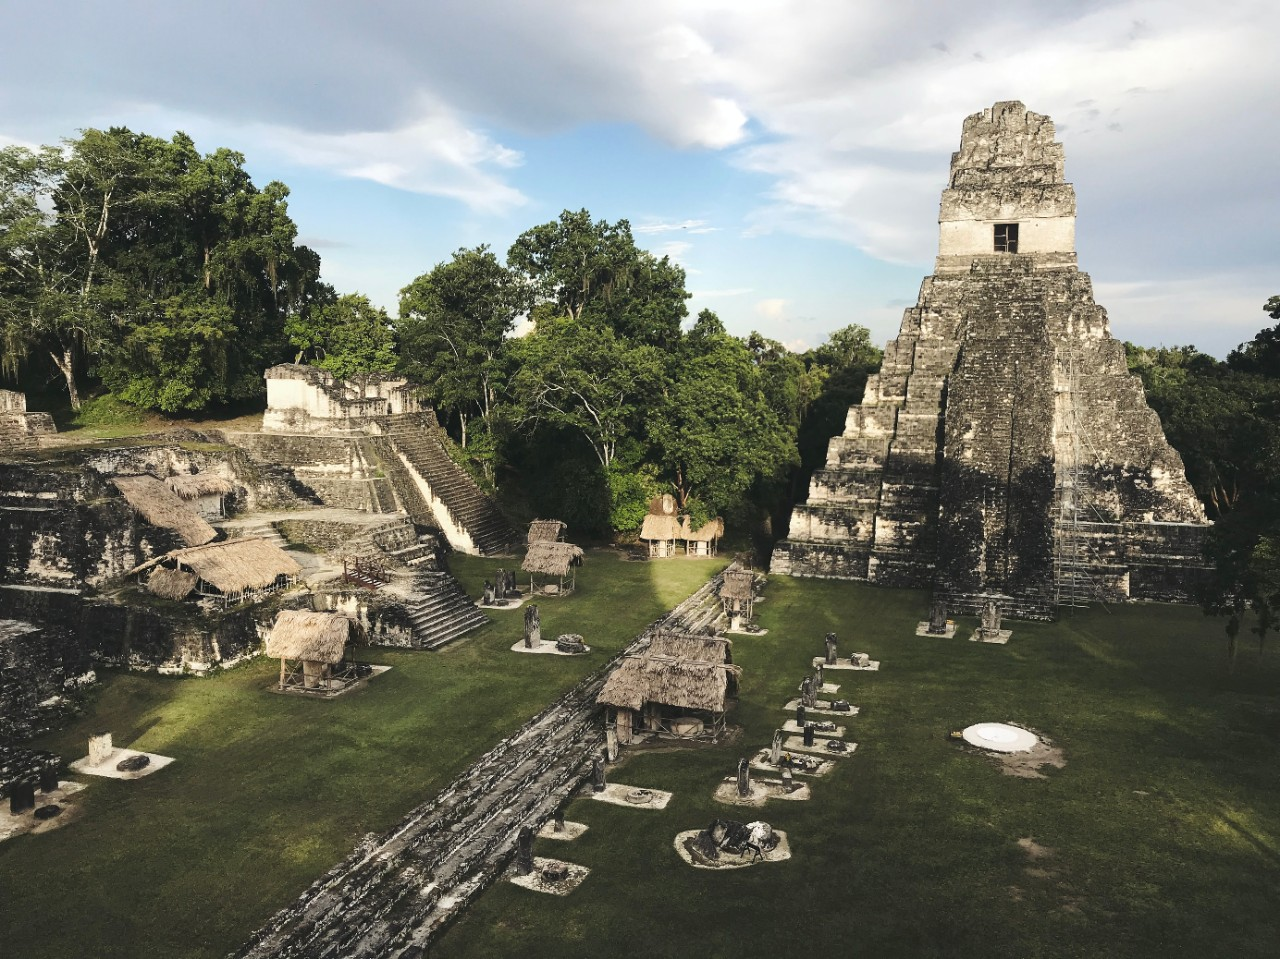 The ancient city of Tikal in Guatemala.